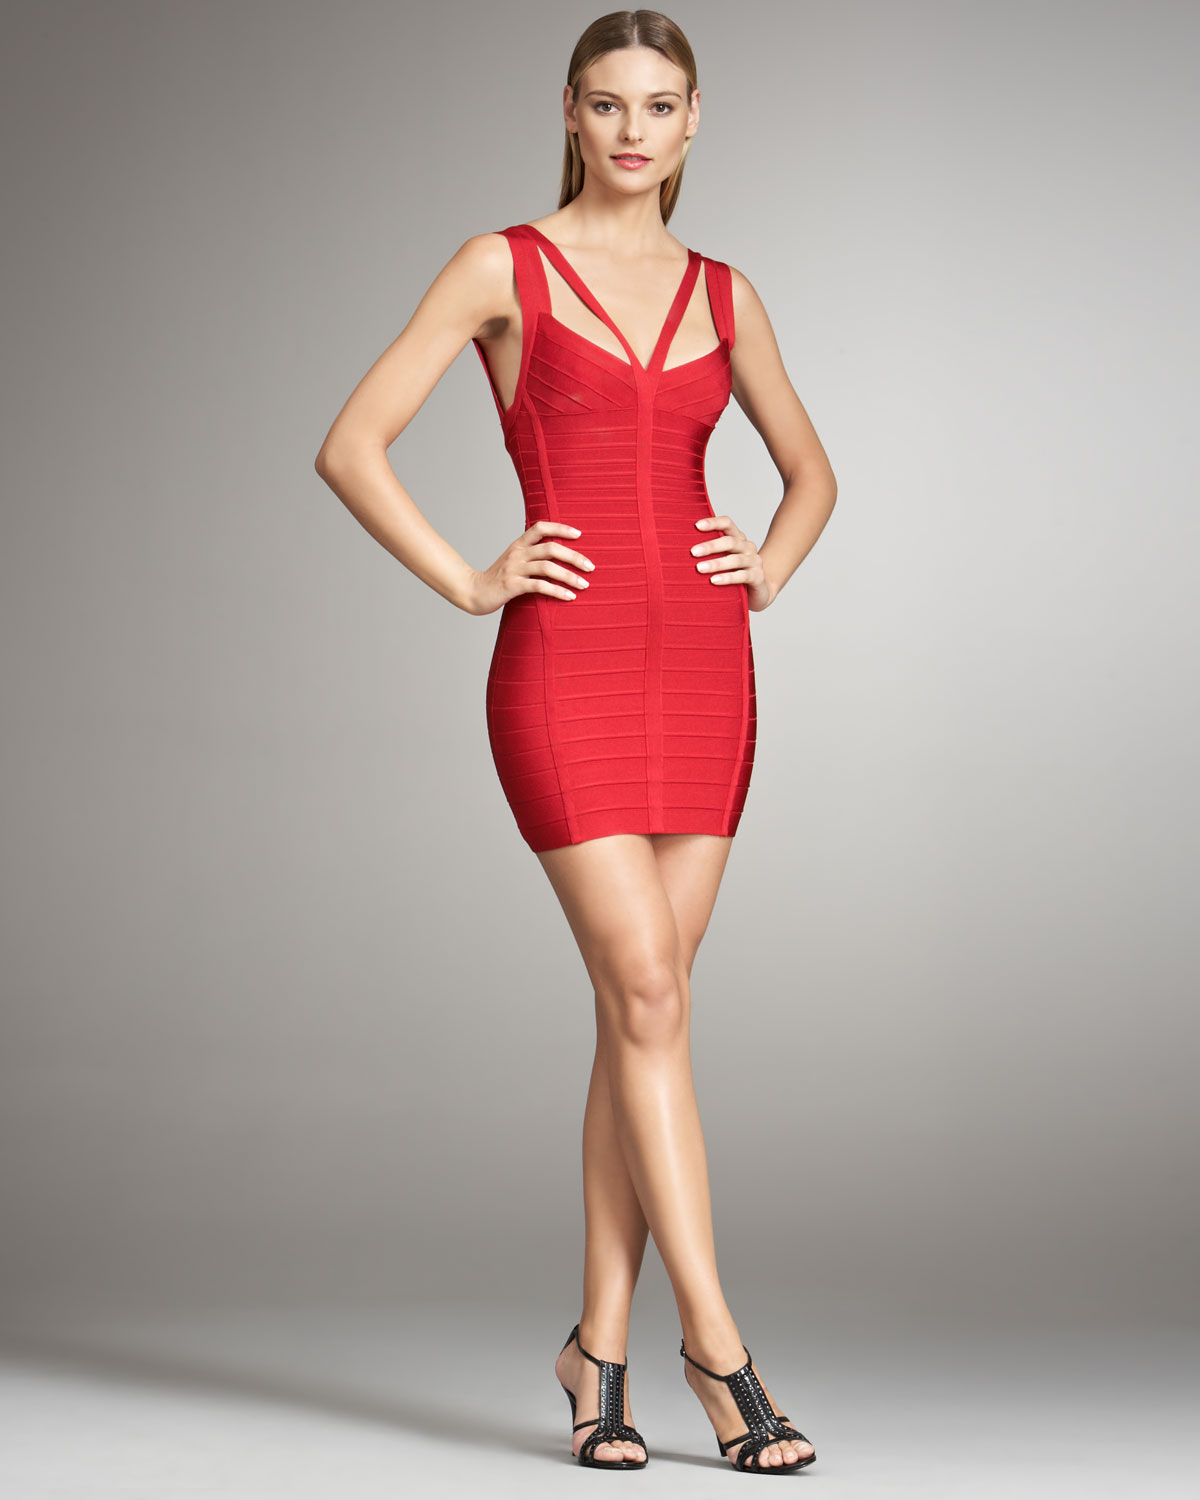 790ebefc4a93 Lyst - Hervé Léger Double-strap Bandage Dress in Red